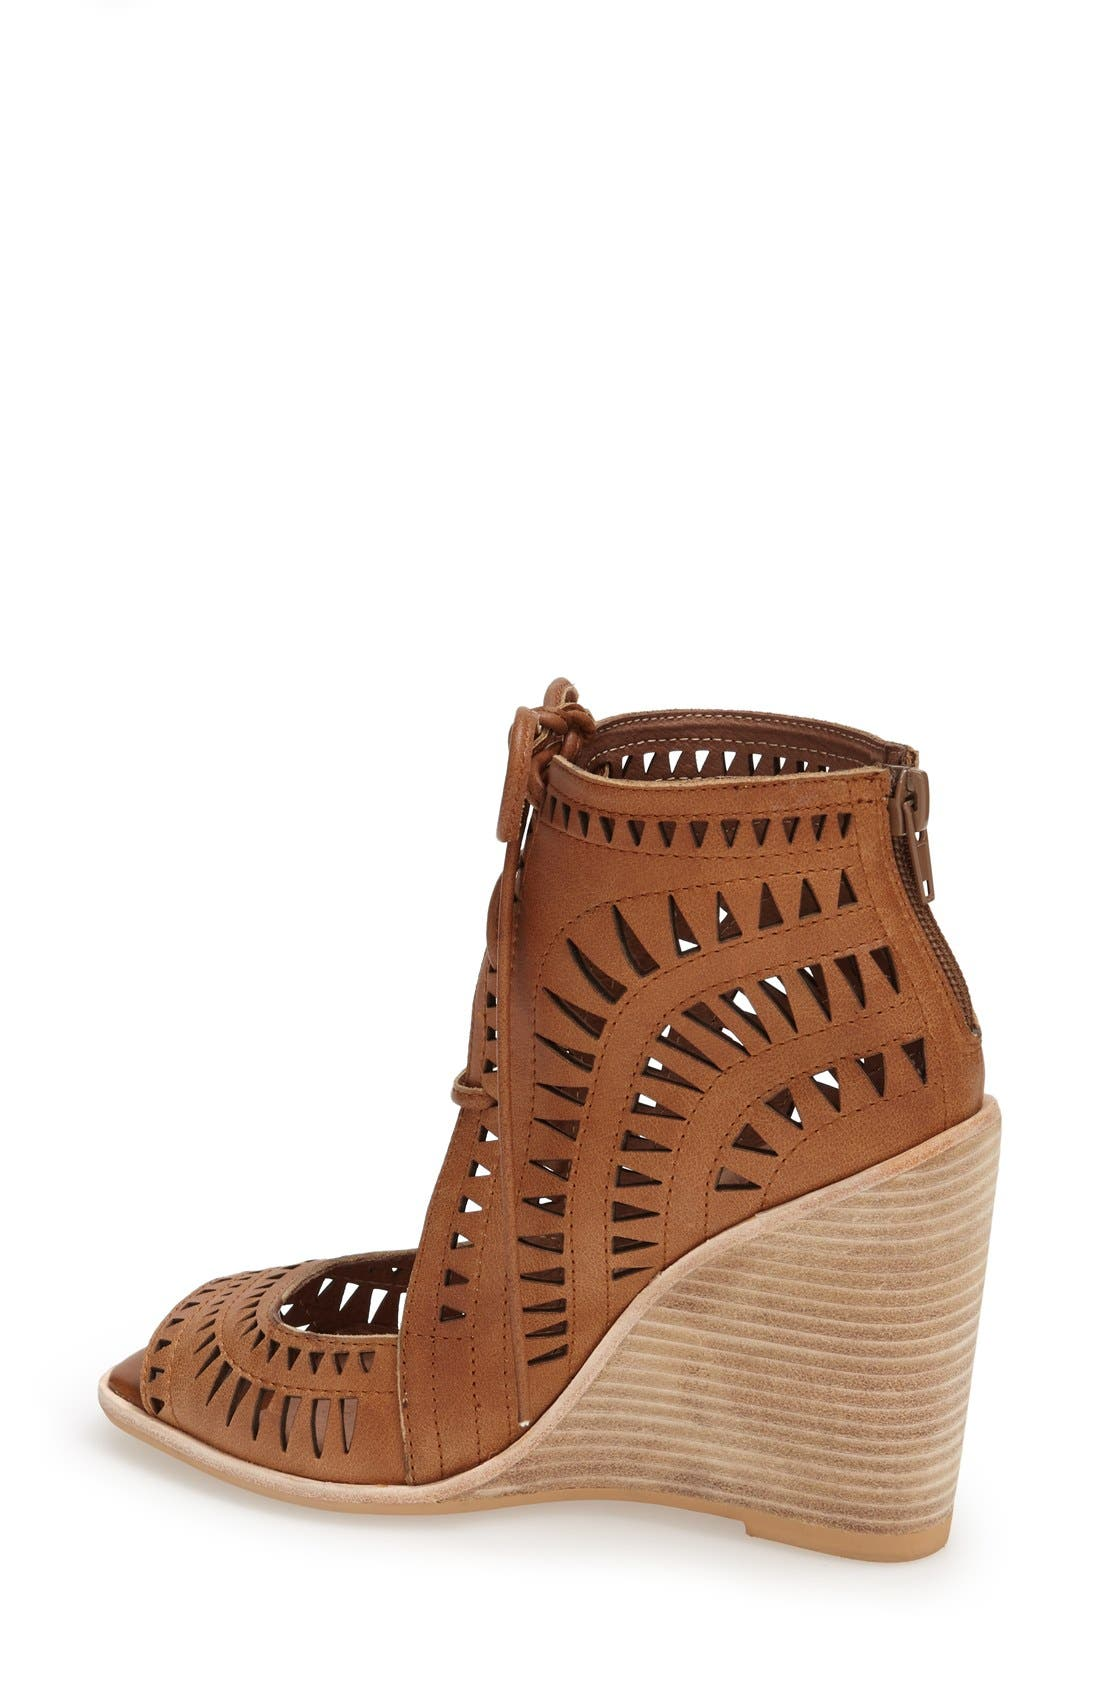 Alternate Image 2  - Jeffrey Campbell 'Rodillo-Hi' Wedge Sandal (Women)